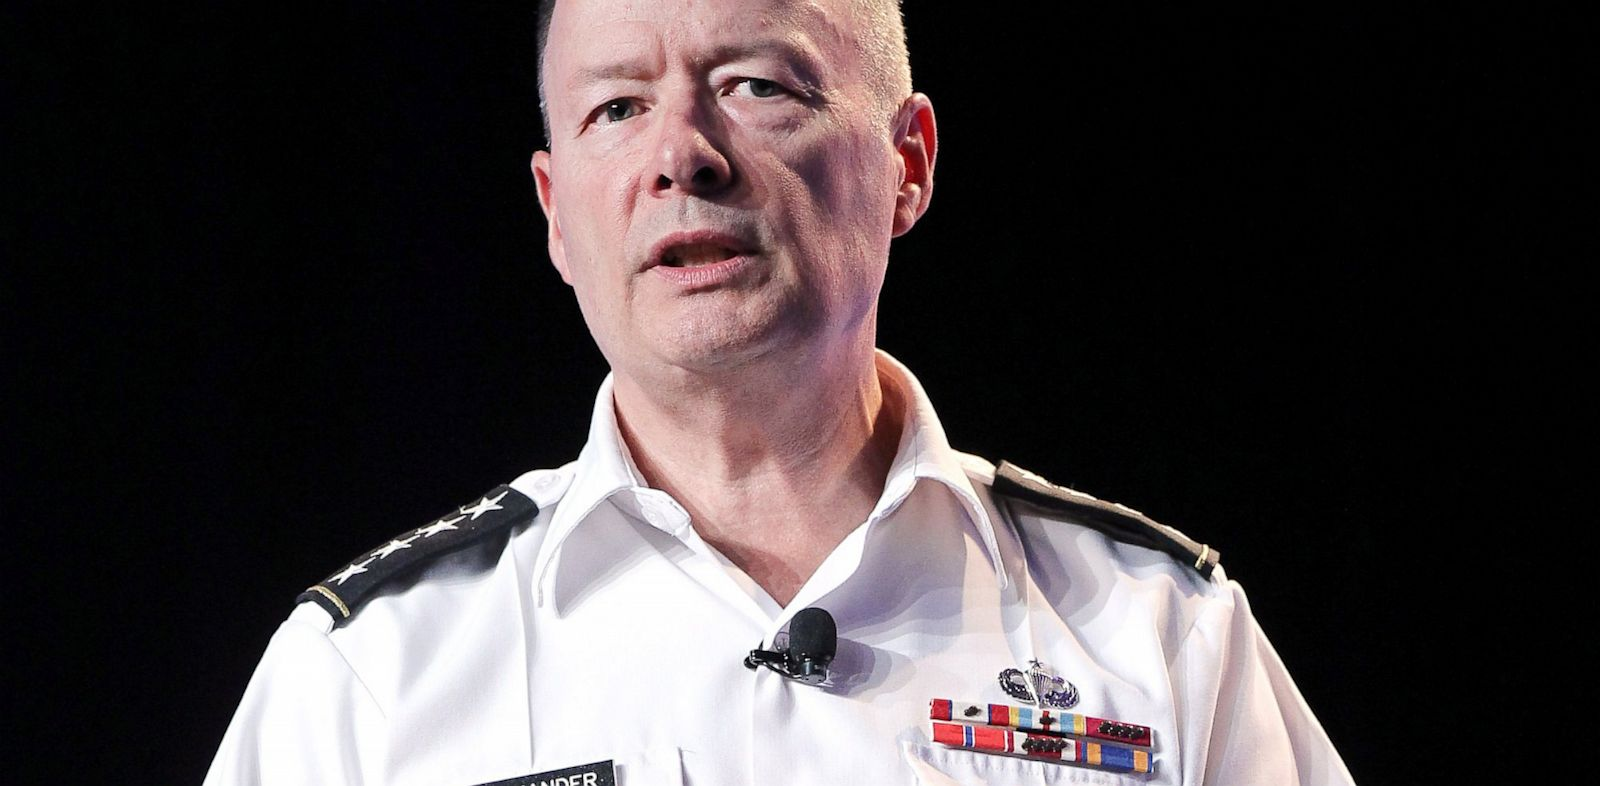 PHOTO: Army General Keith Alexander, head of the National Security Agency delivers a keynote address at the Black Hat hacker conference on July 31, 2013, in Las Vegas.